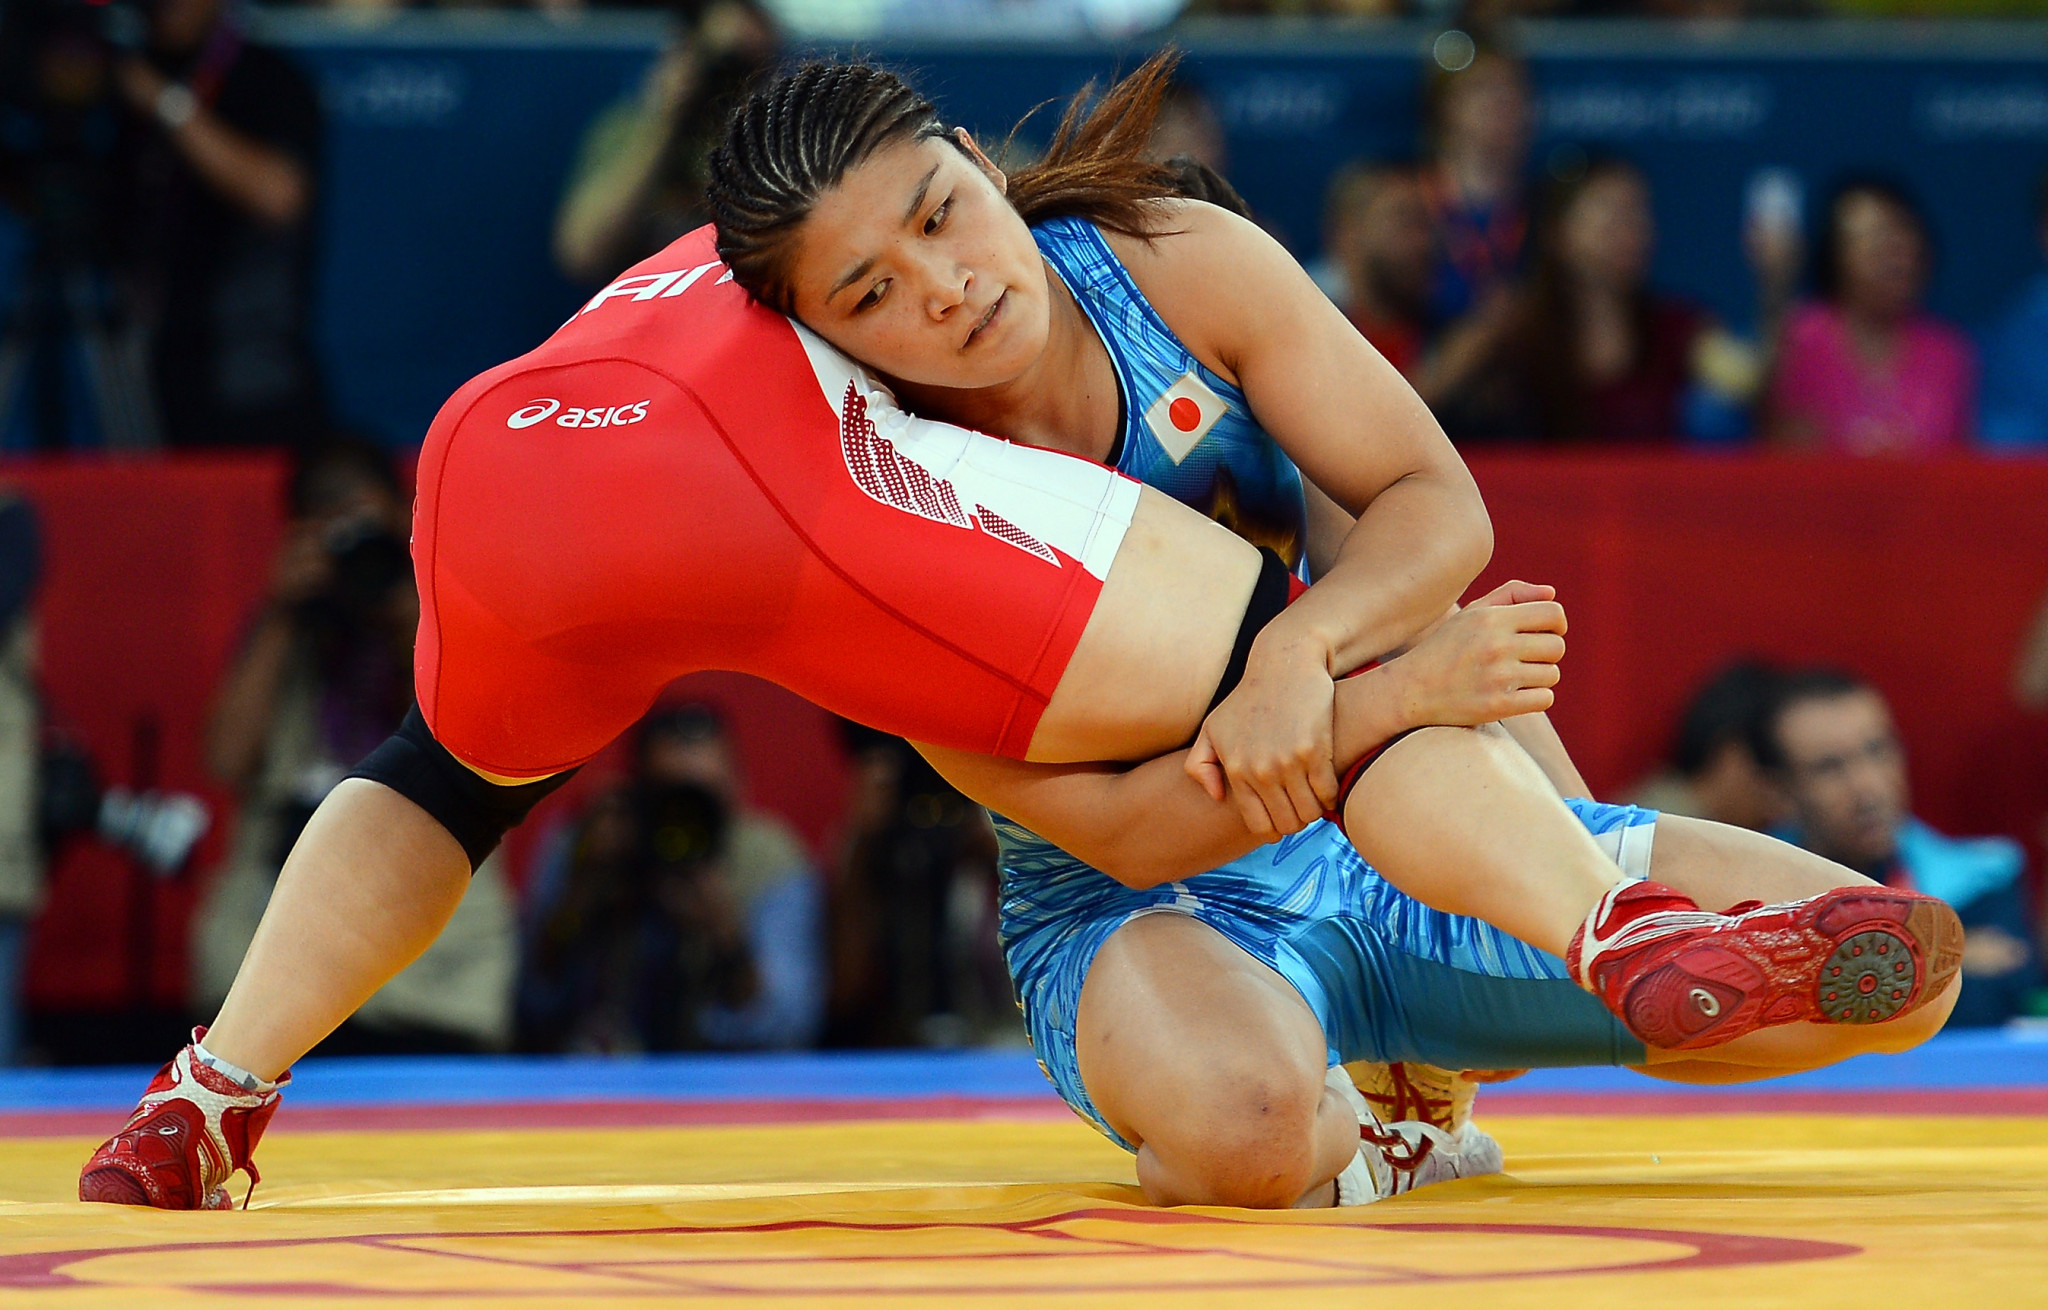 Kaori Icho, as a wrestler, had very little room for error come the Olympics ©Getty Images